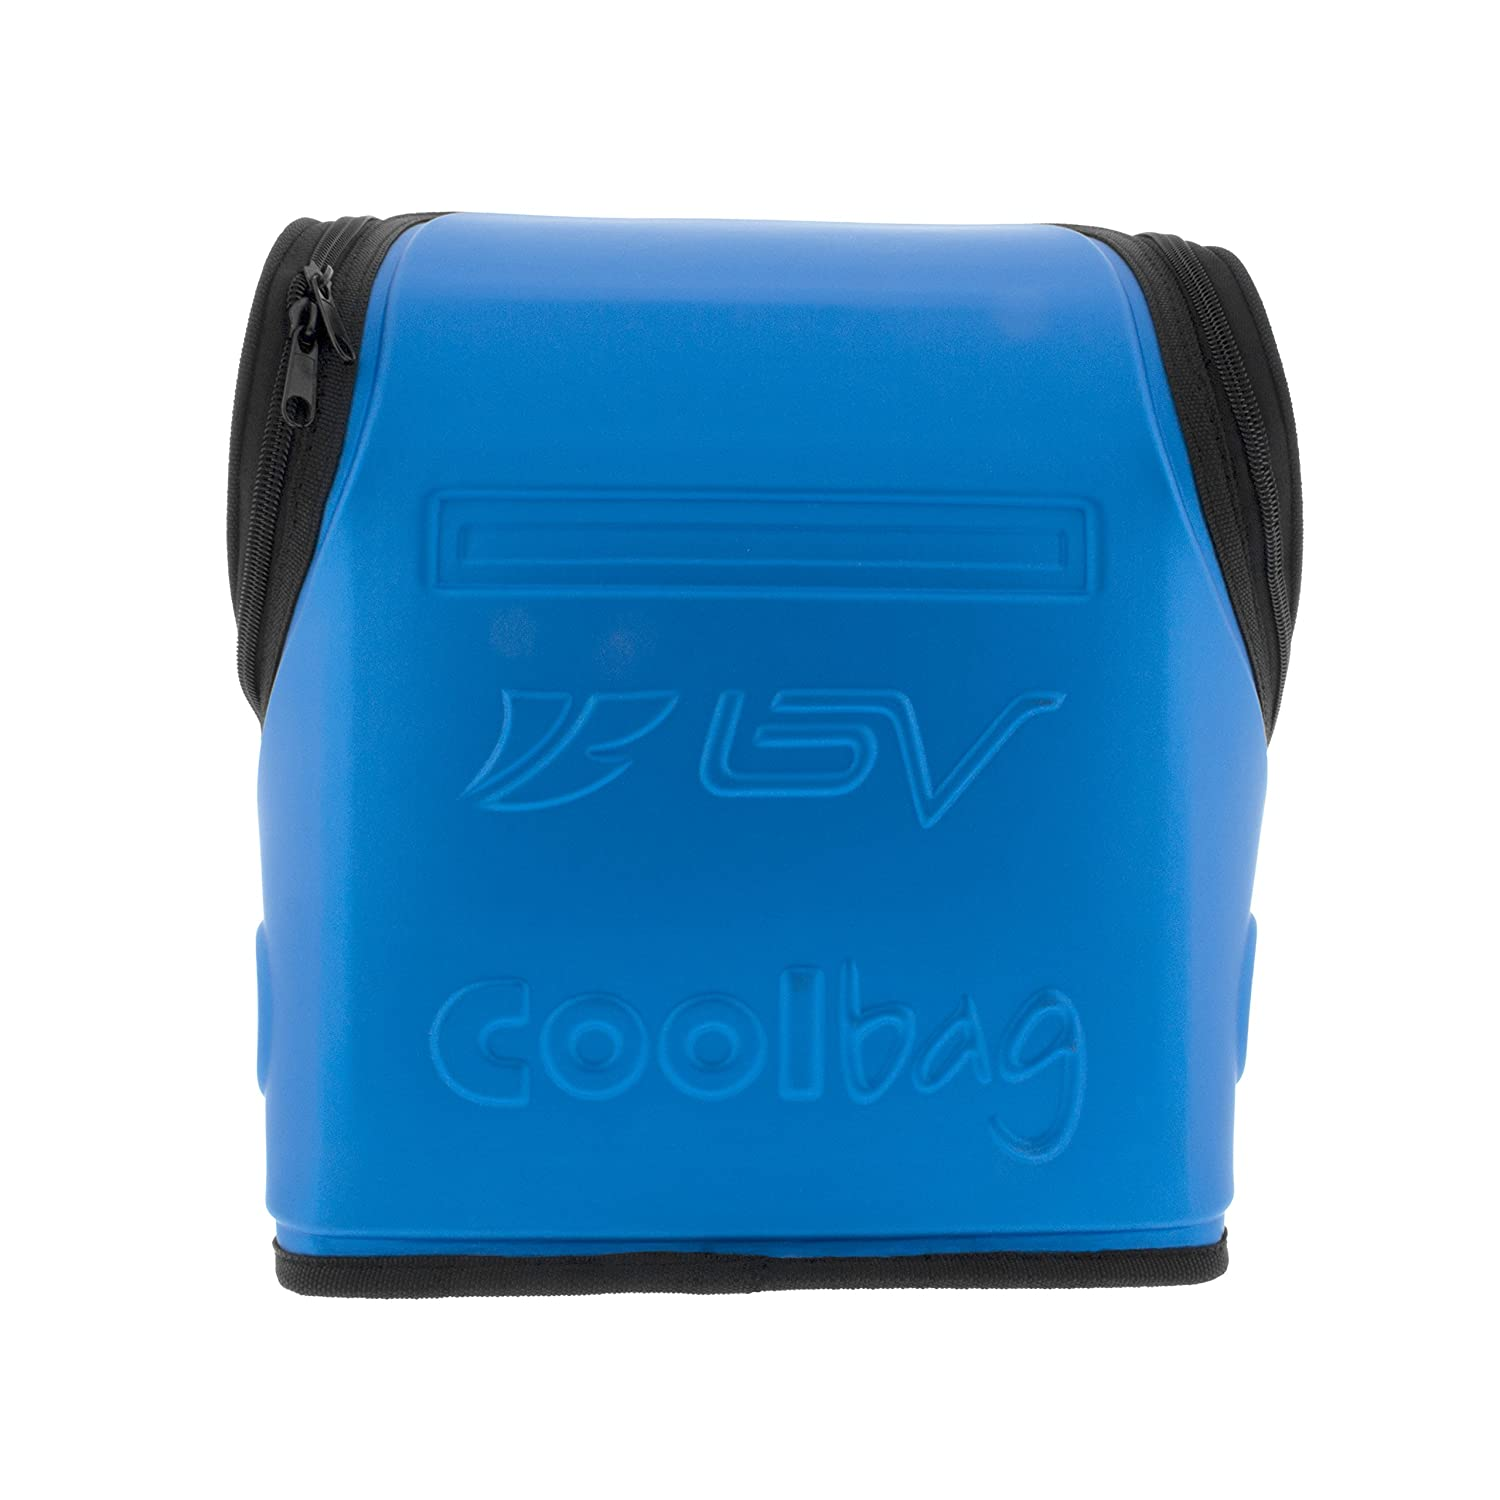 BV Insulated Handlebar Cooler Bag for Warm or Cold Items Shoulder Strap /& Quick-Release Handlebar Mount Available in 2 Colors HB3